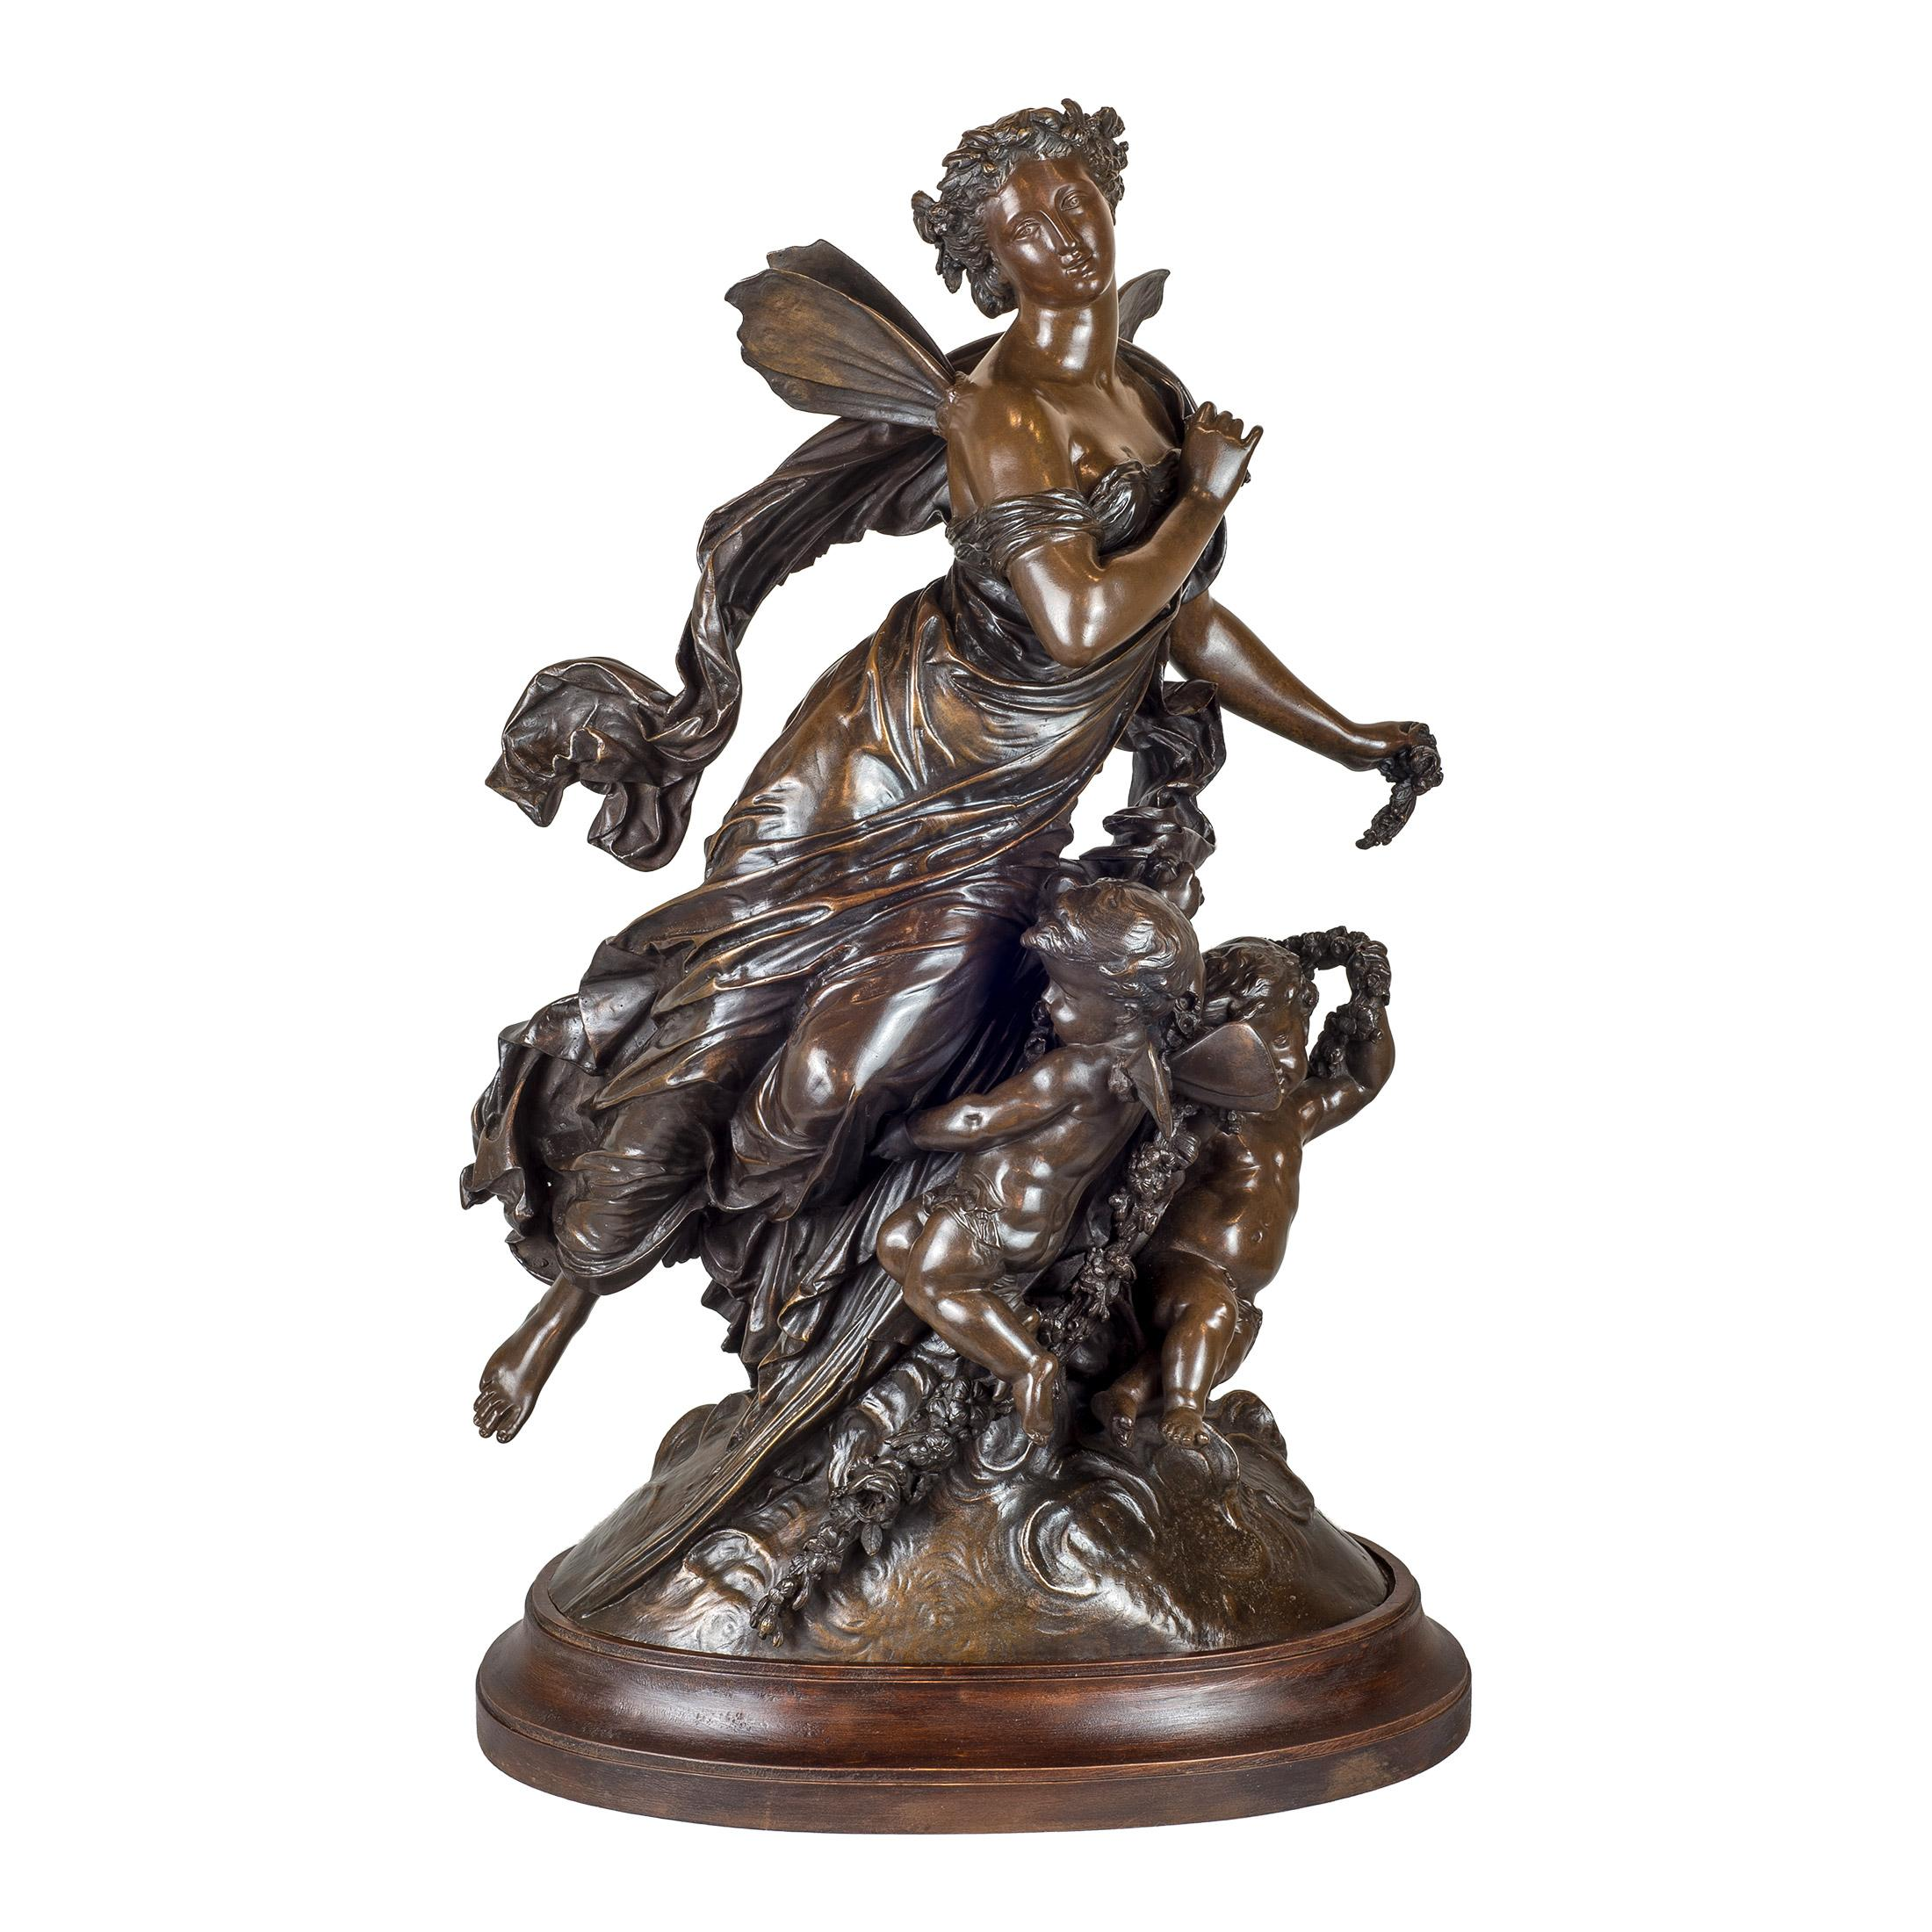 French Patinated Bronze Figural Group on Bronze by Moreau